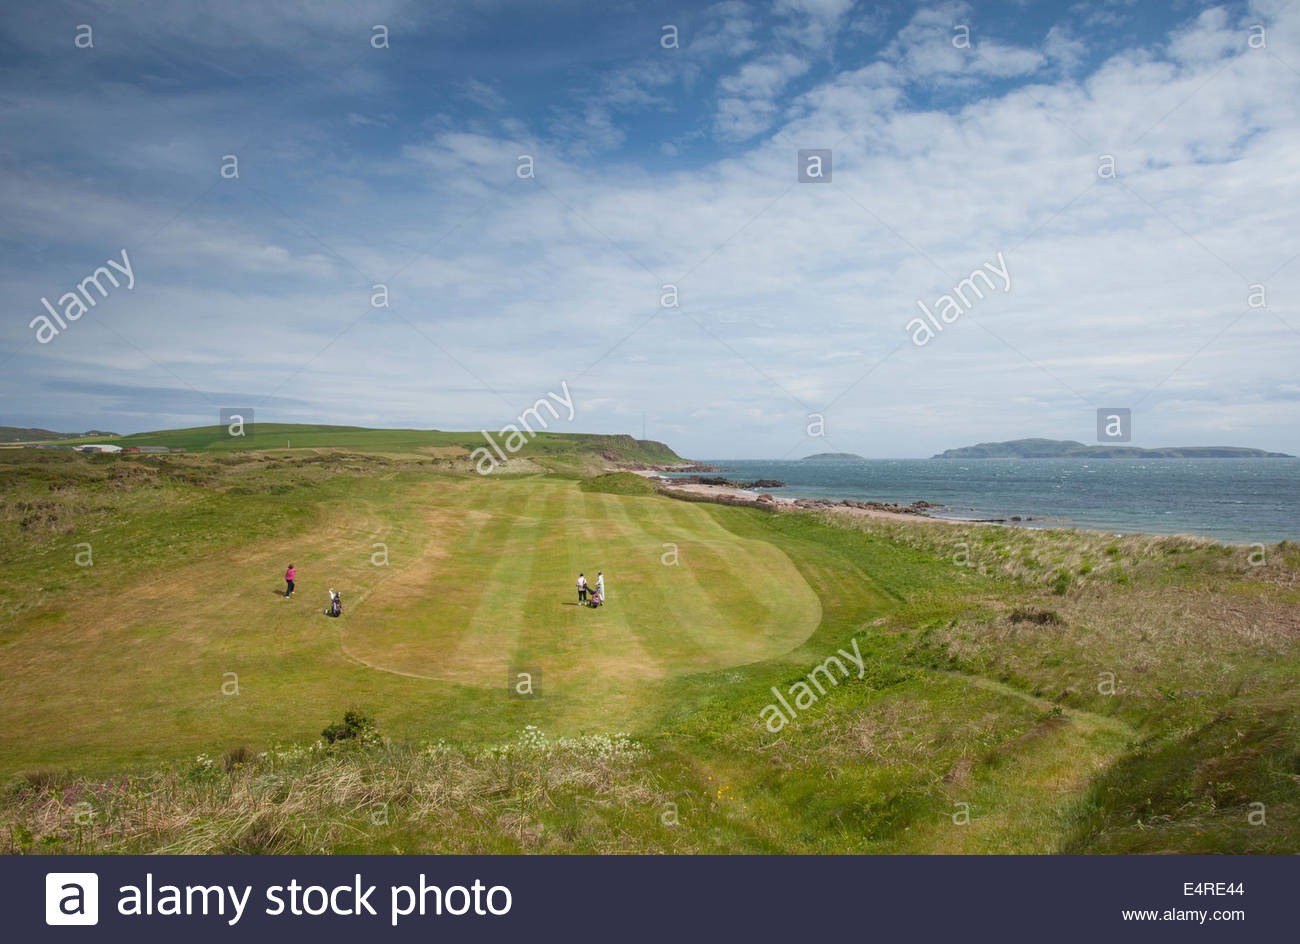 Three women golfers playing one of the holes at the Dunaverty Golf Club by Southend, Kintyre, Argyll, Scotland. - Stock Image